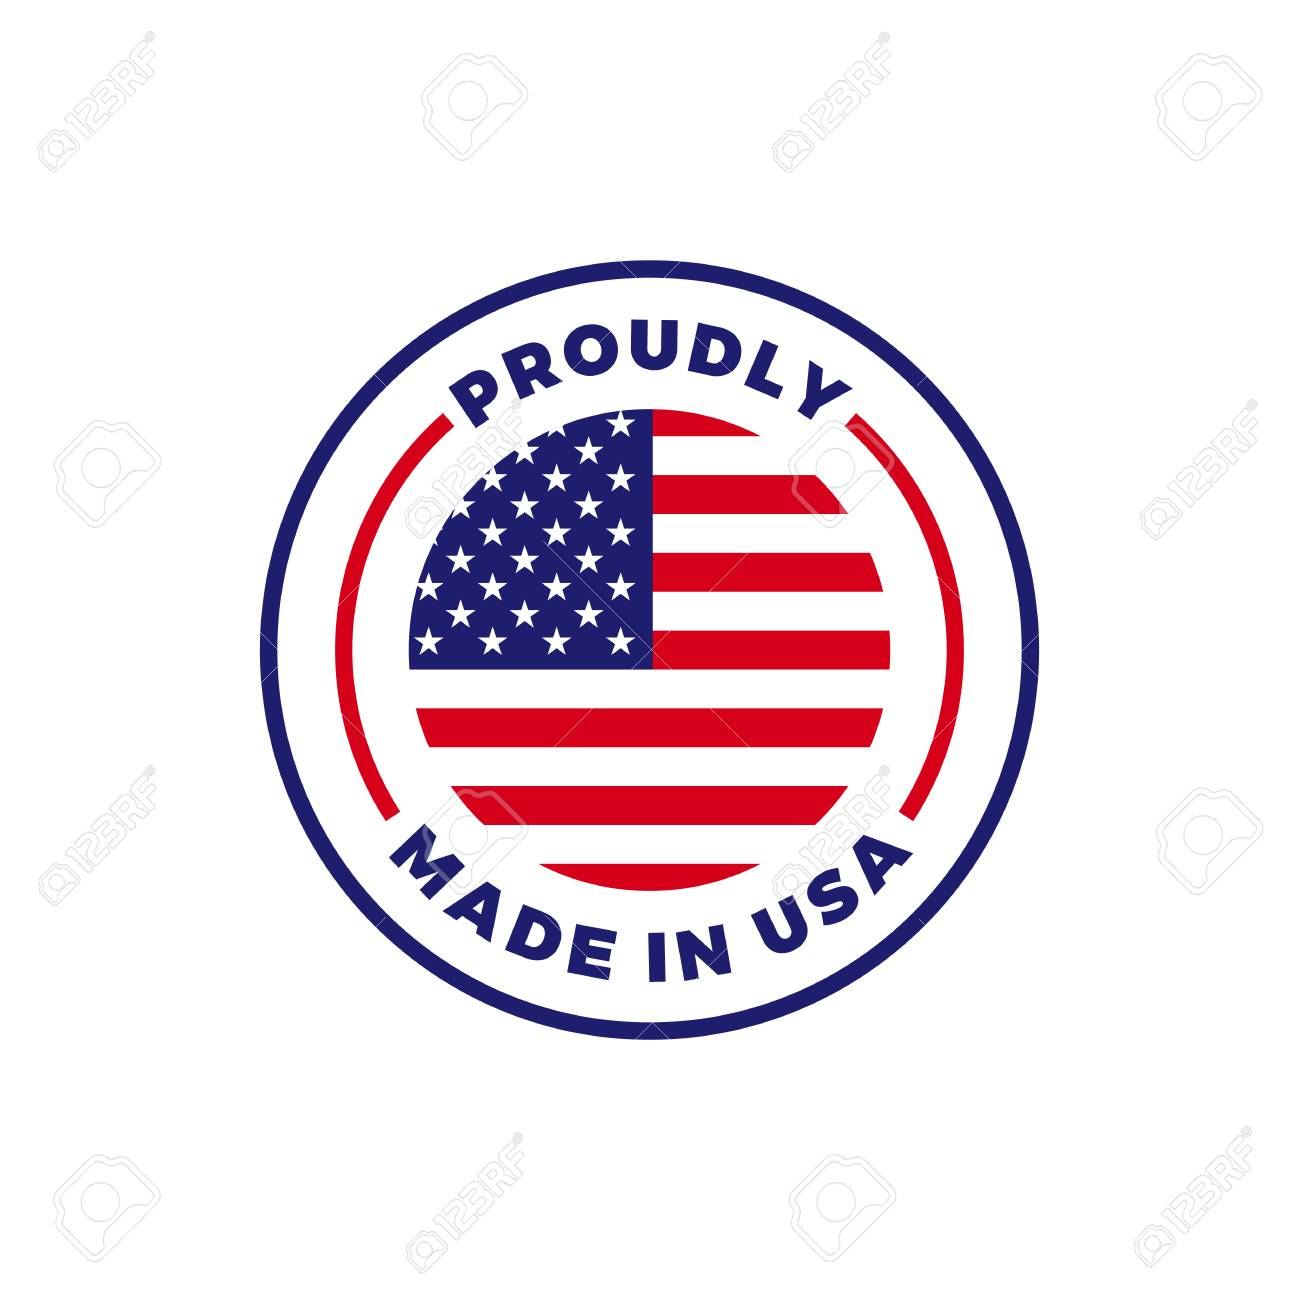 Made in USA label icon with American flag seal. Vector quality logo badge for US made certified premium package design - 108054673